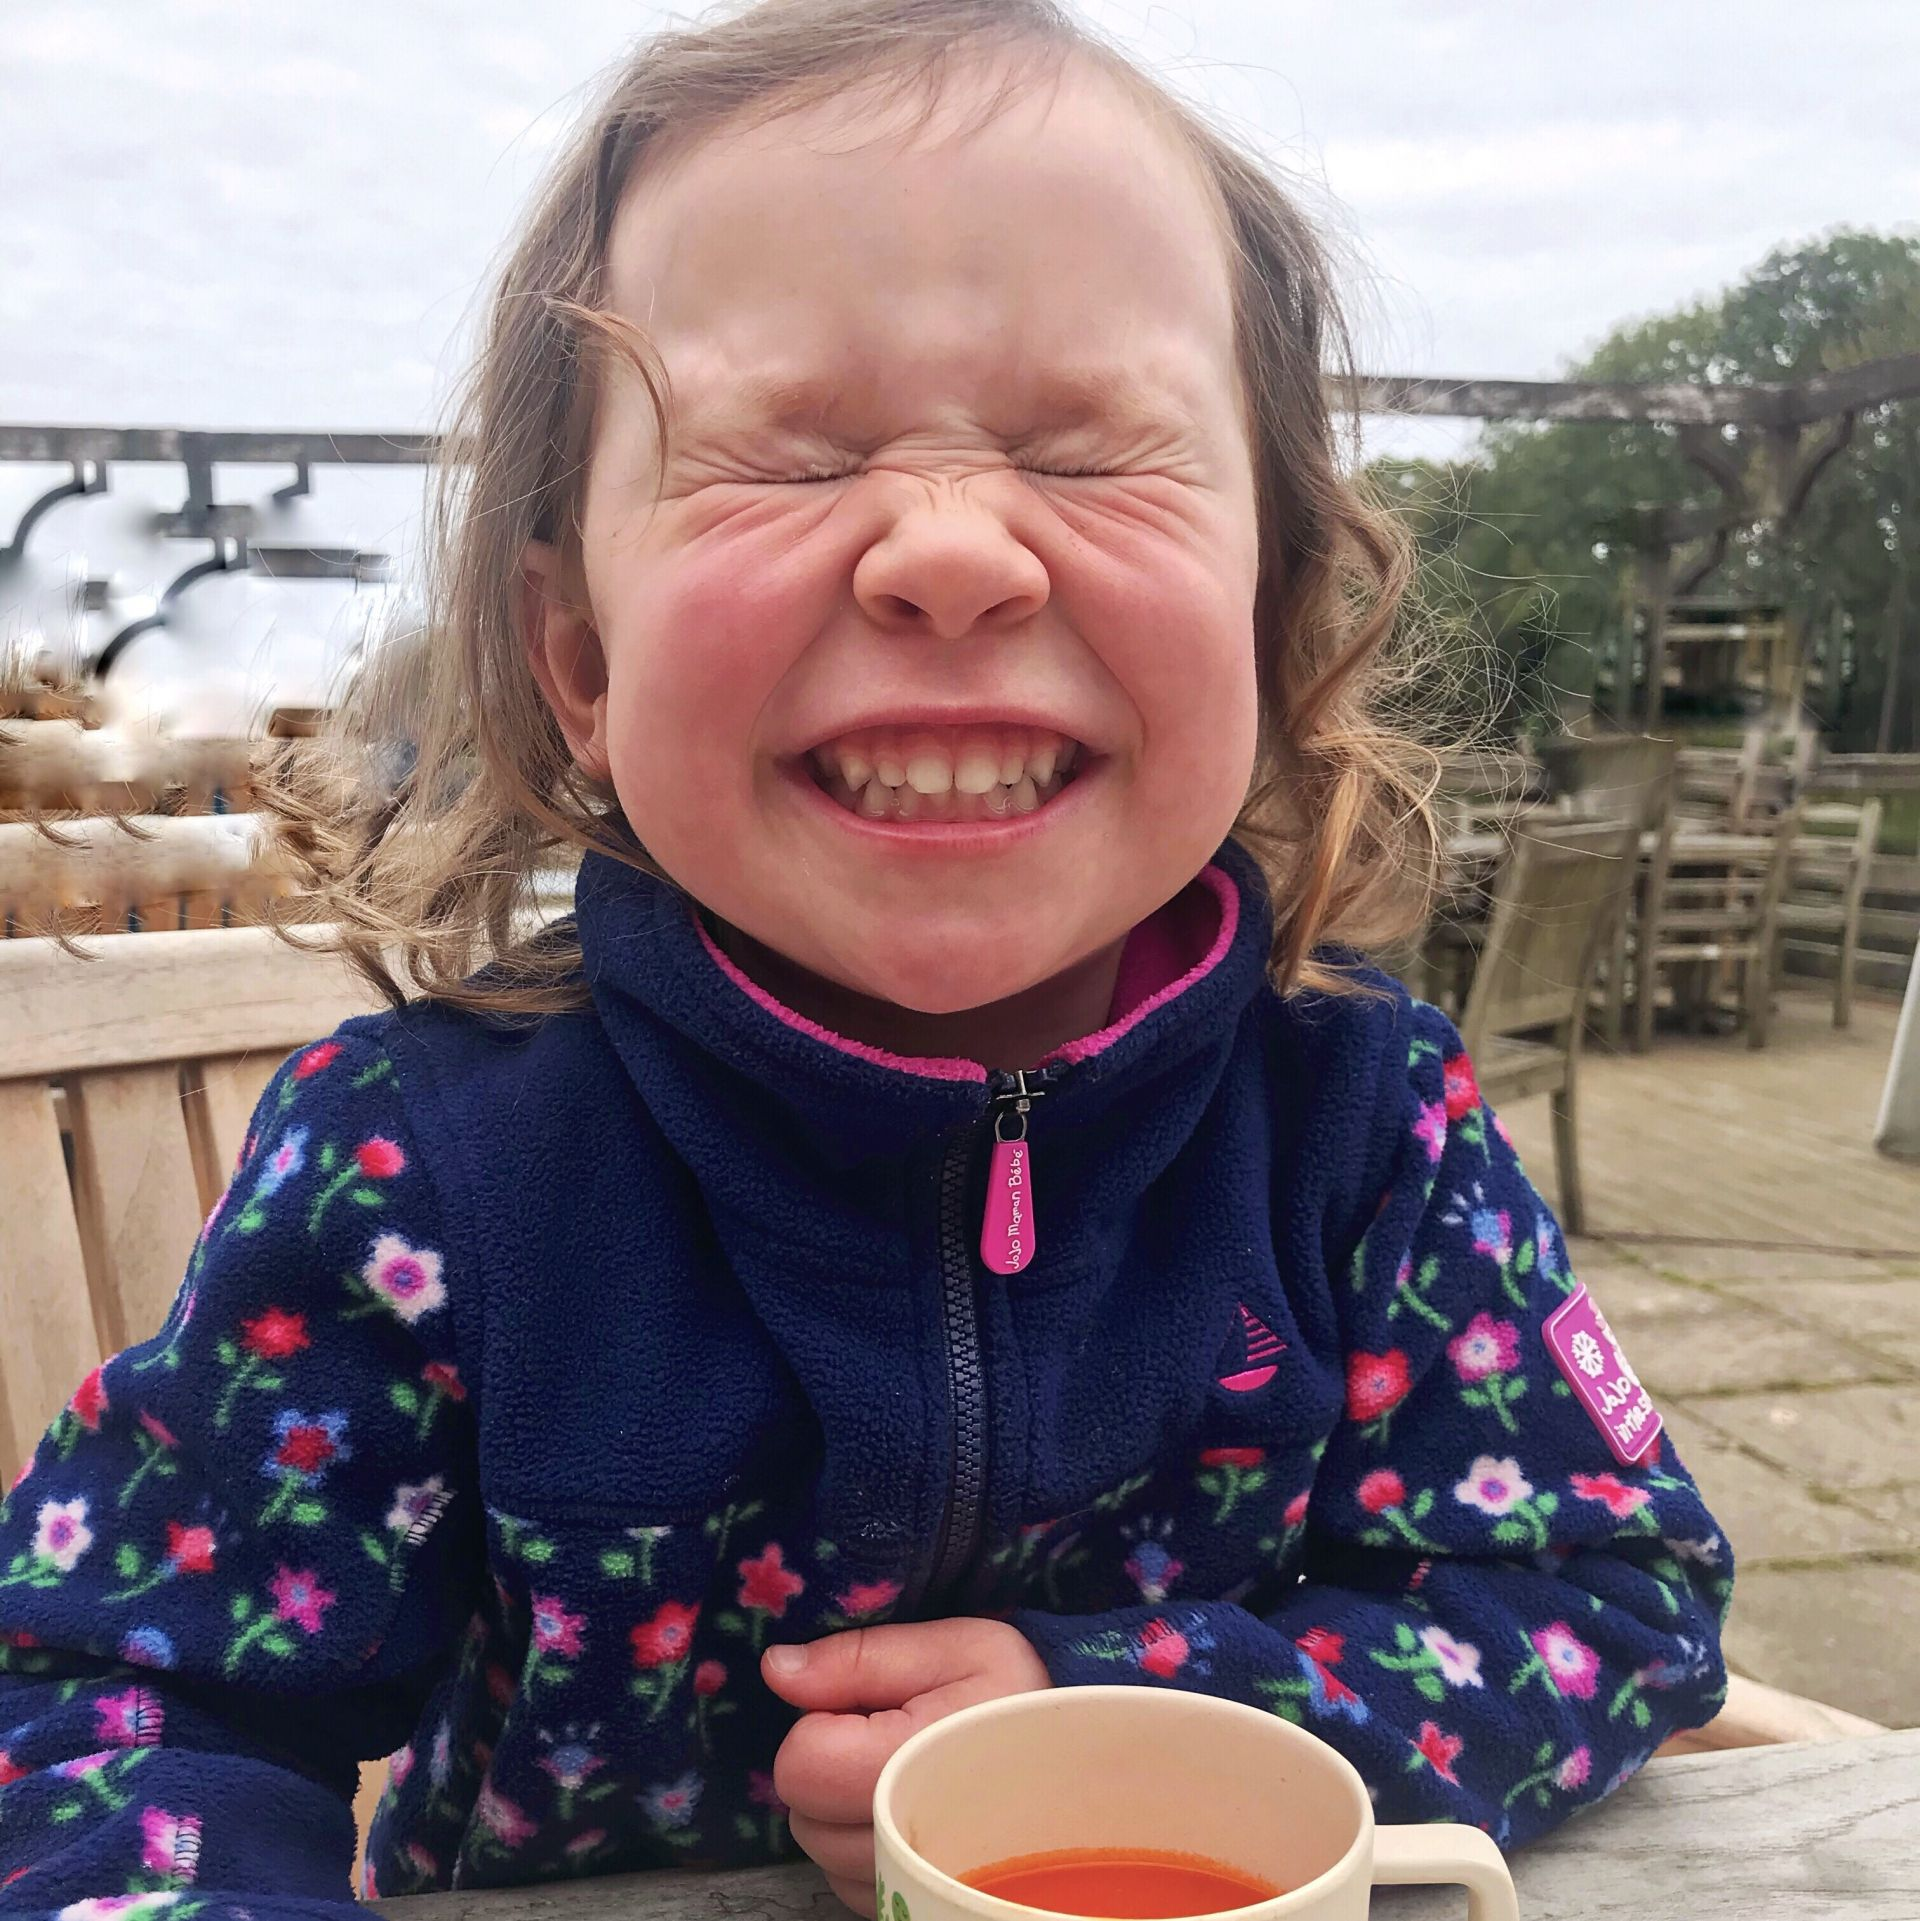 A toddler grinning whilst eating soup